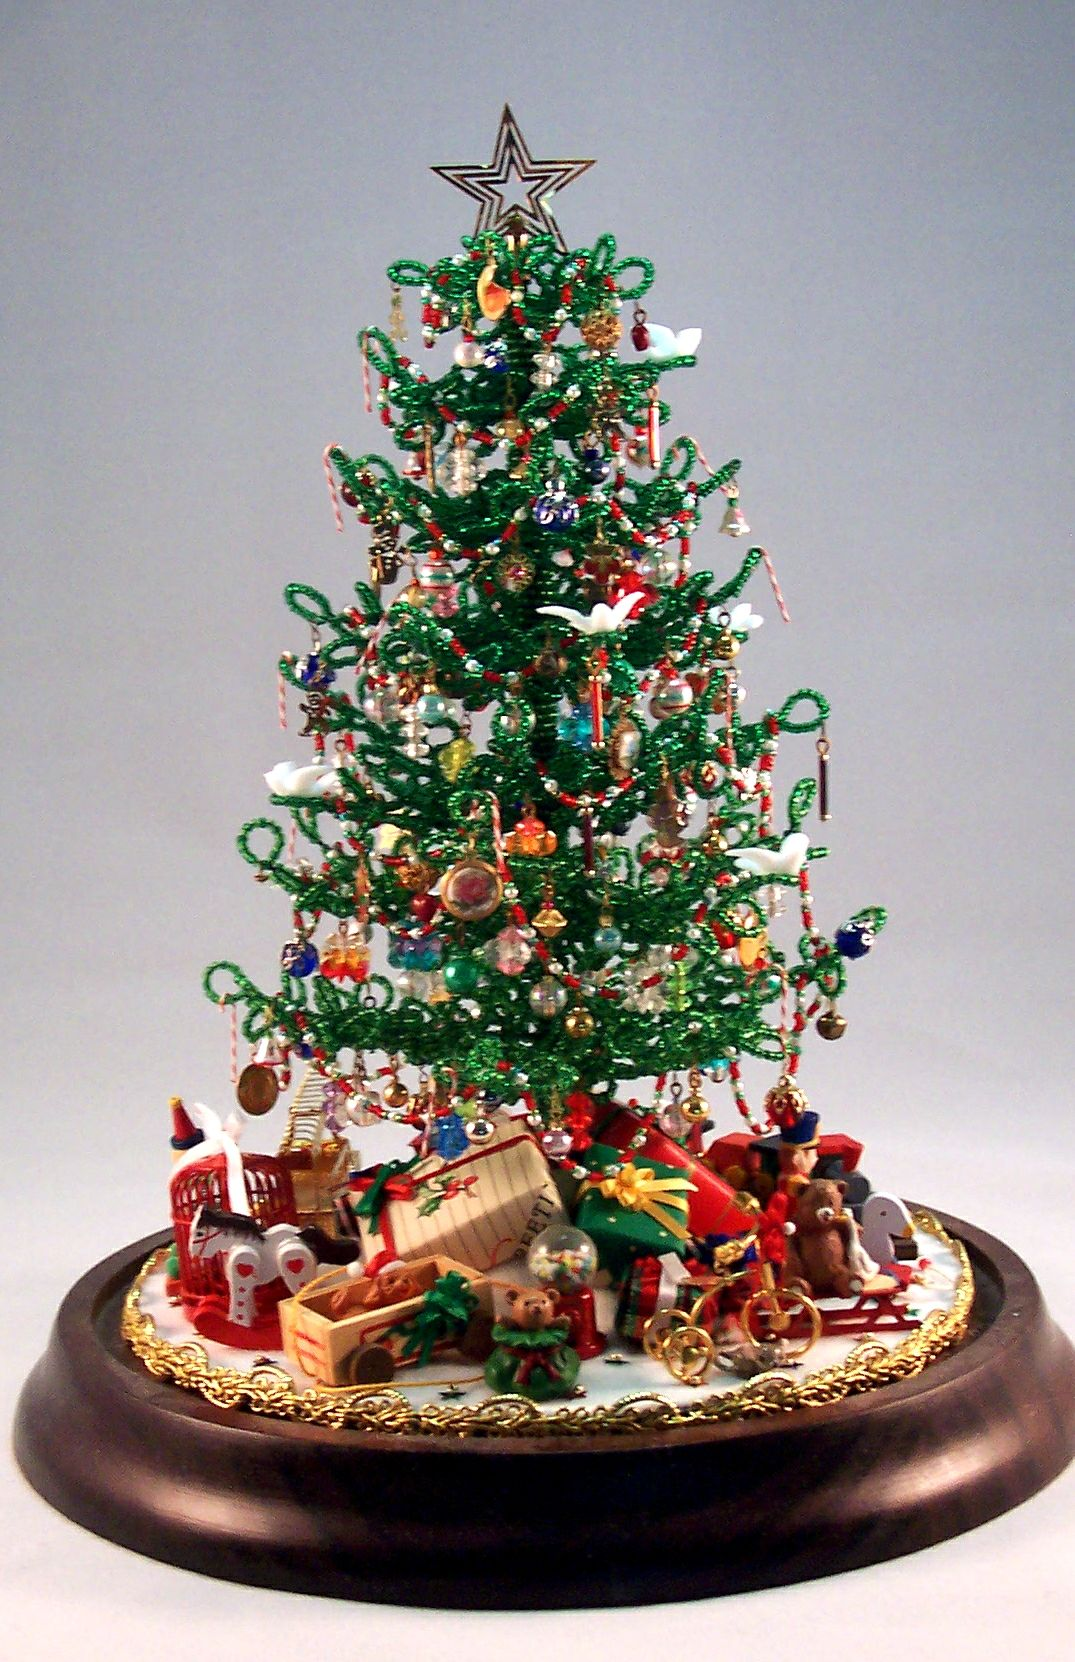 Beaded Miniature Christmas Tree Miniature Christmas Miniature Christmas Trees Christmas Tree Beads